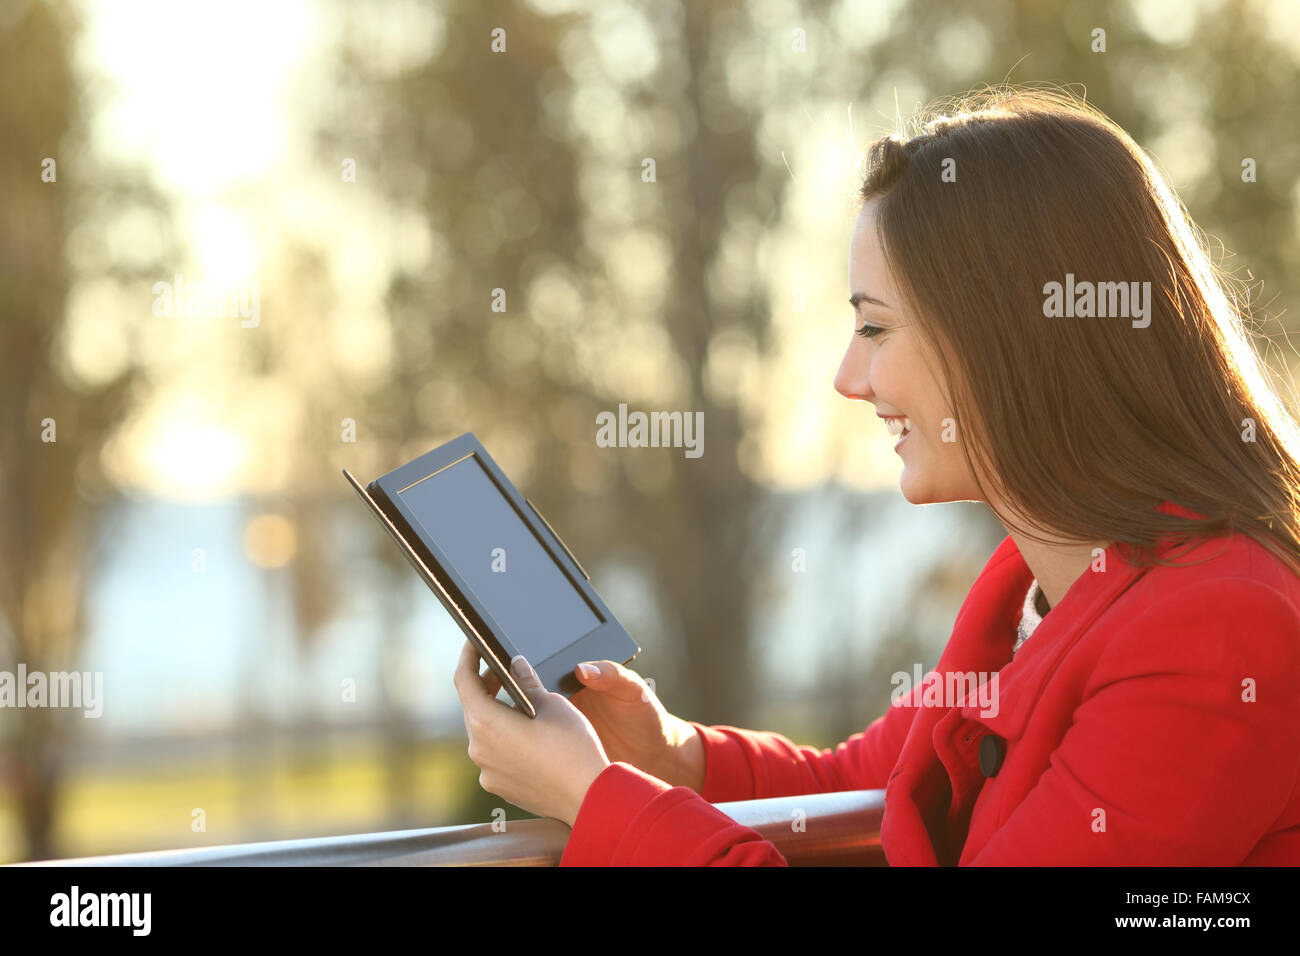 Woman reading an ebook in a balcony at sunset in winter - Stock Image